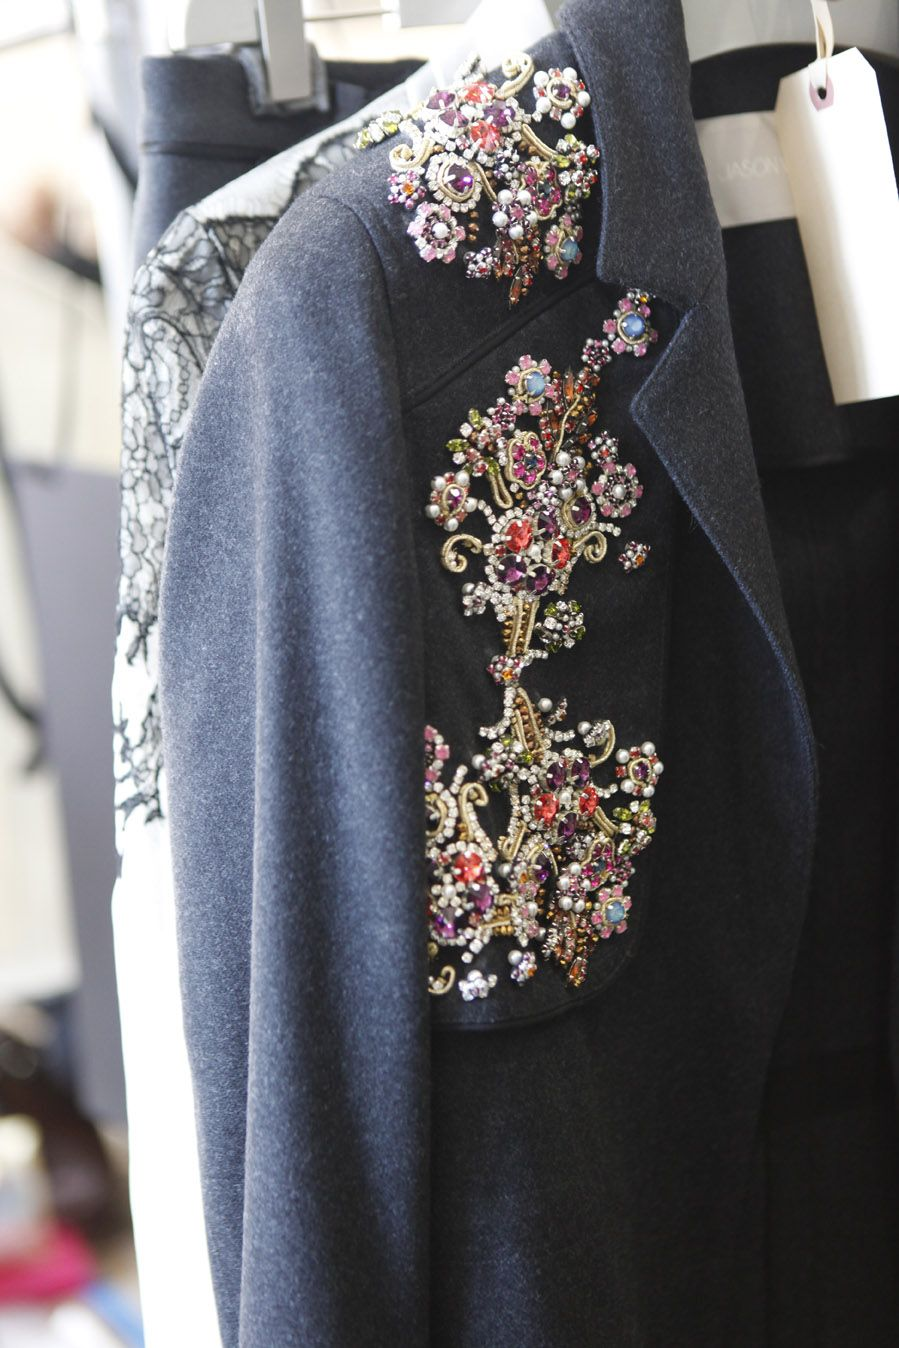 Trench Coat with Swarovski Elements-Fall 2011